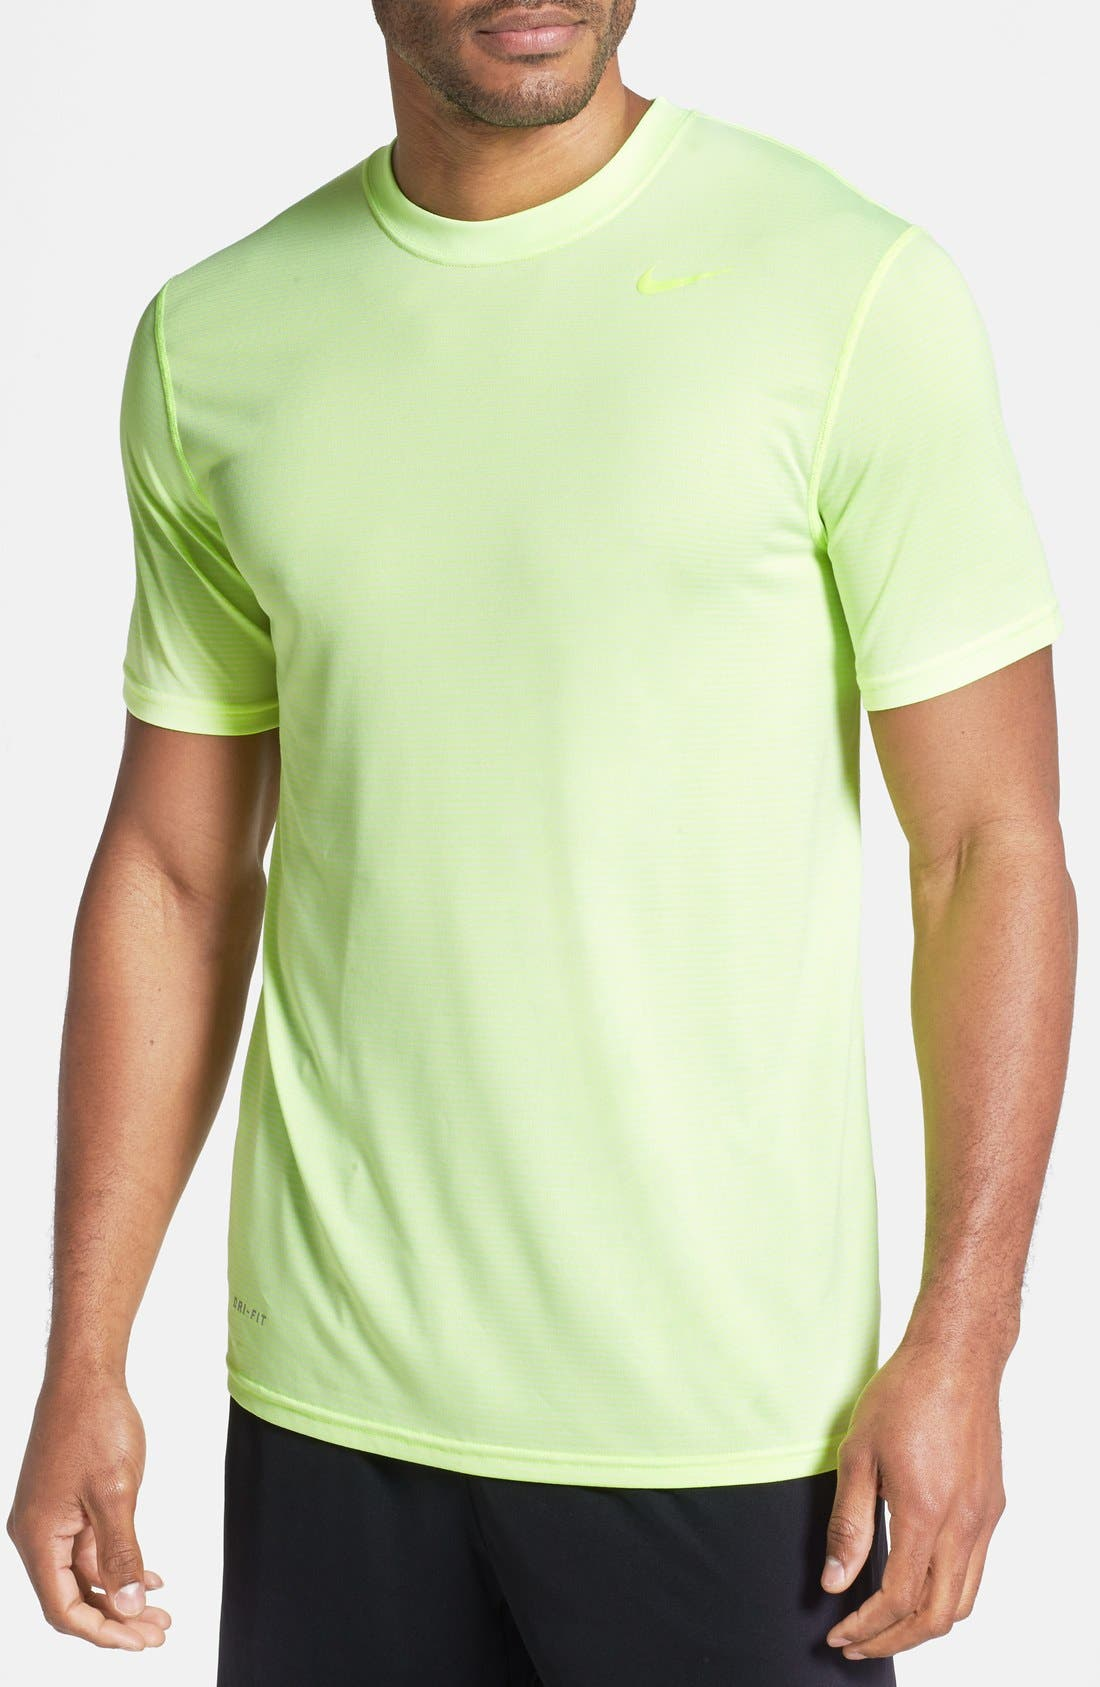 Alternate Image 1 Selected - Nike 'Dri-FIT Touch' Moisture Wicking T-Shirt